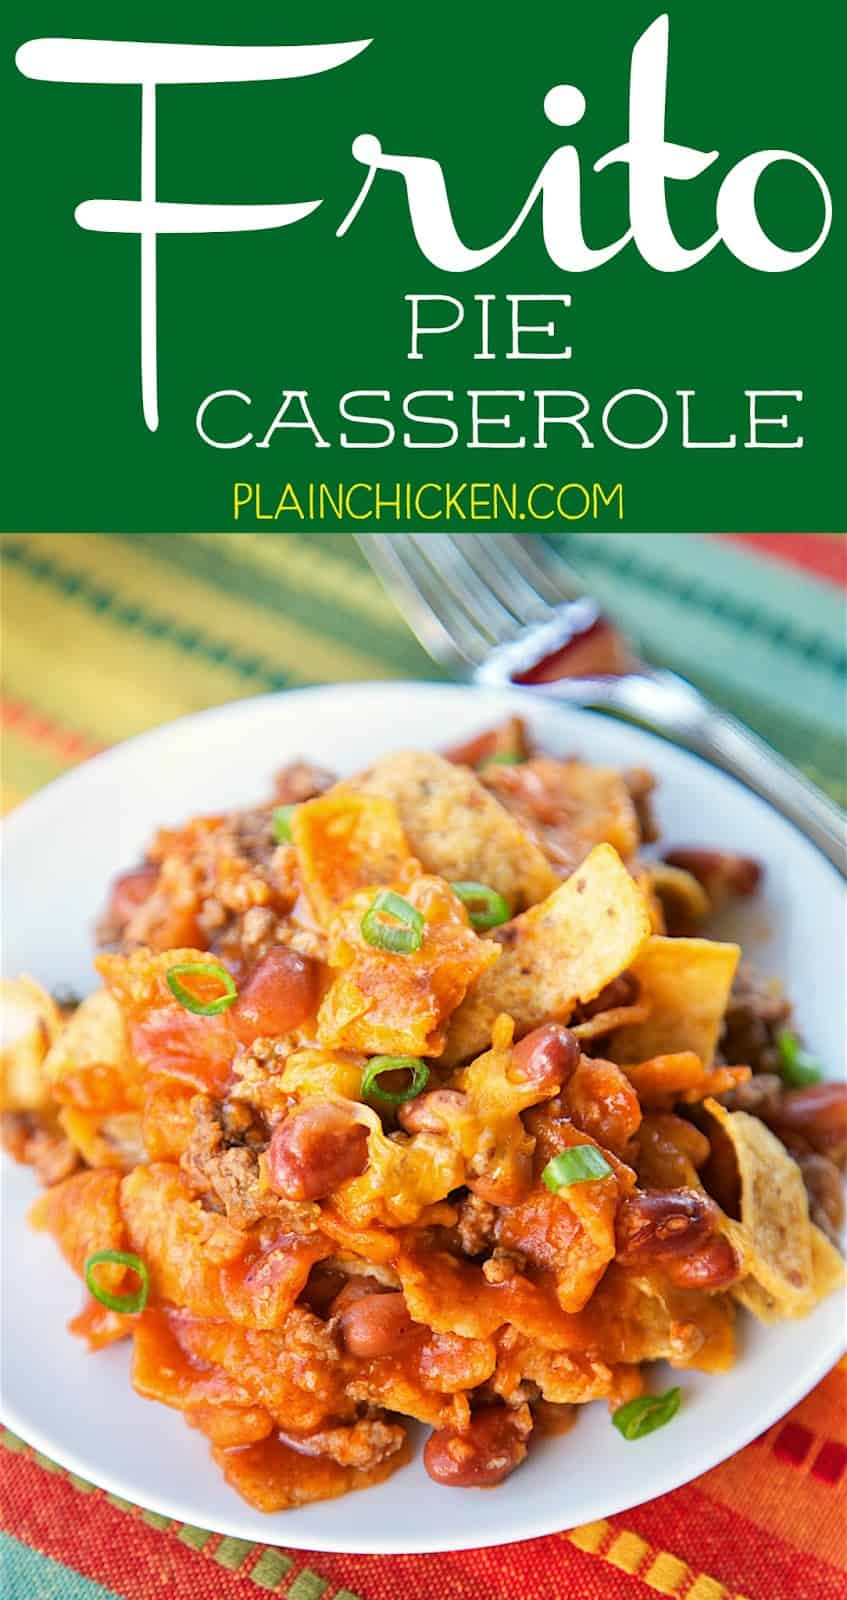 Frito Pie Casserole - everyone LOVED this recipe! Ground beef, onion, Ranch Beans, Enchilada Sauce, Fritos and Cheese. Great for a potluck and tailgating! Took this to a party and it was gone in a flash!